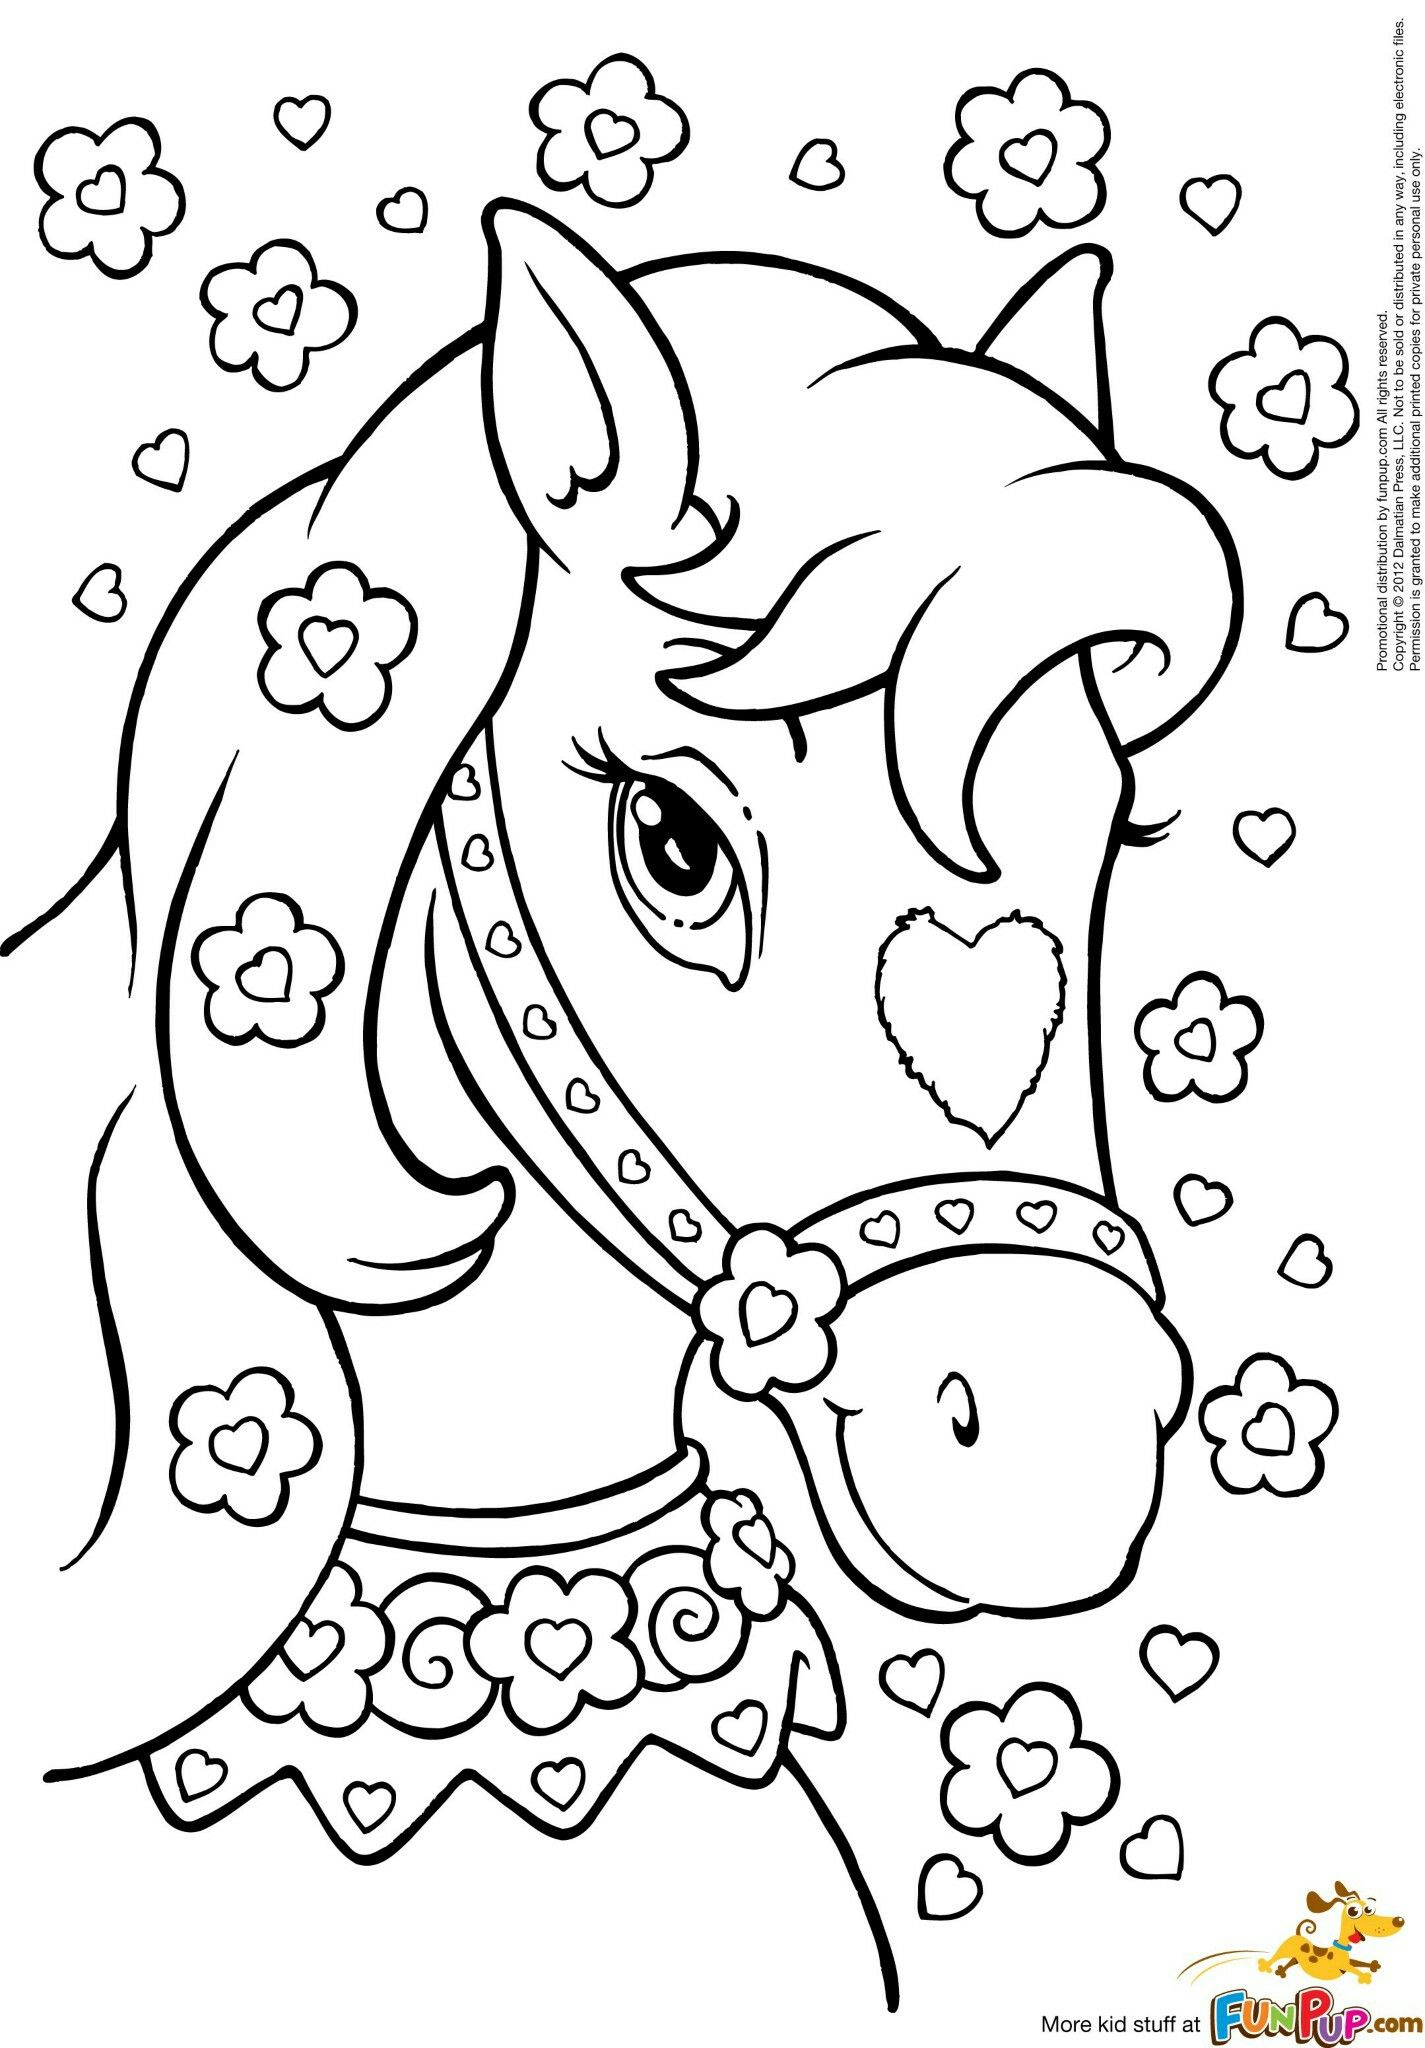 Pin By Elsa Ludick Smit On For Kids Unicorn Coloring Pages Kids Printable Coloring Pages Disney Princess Coloring Pages